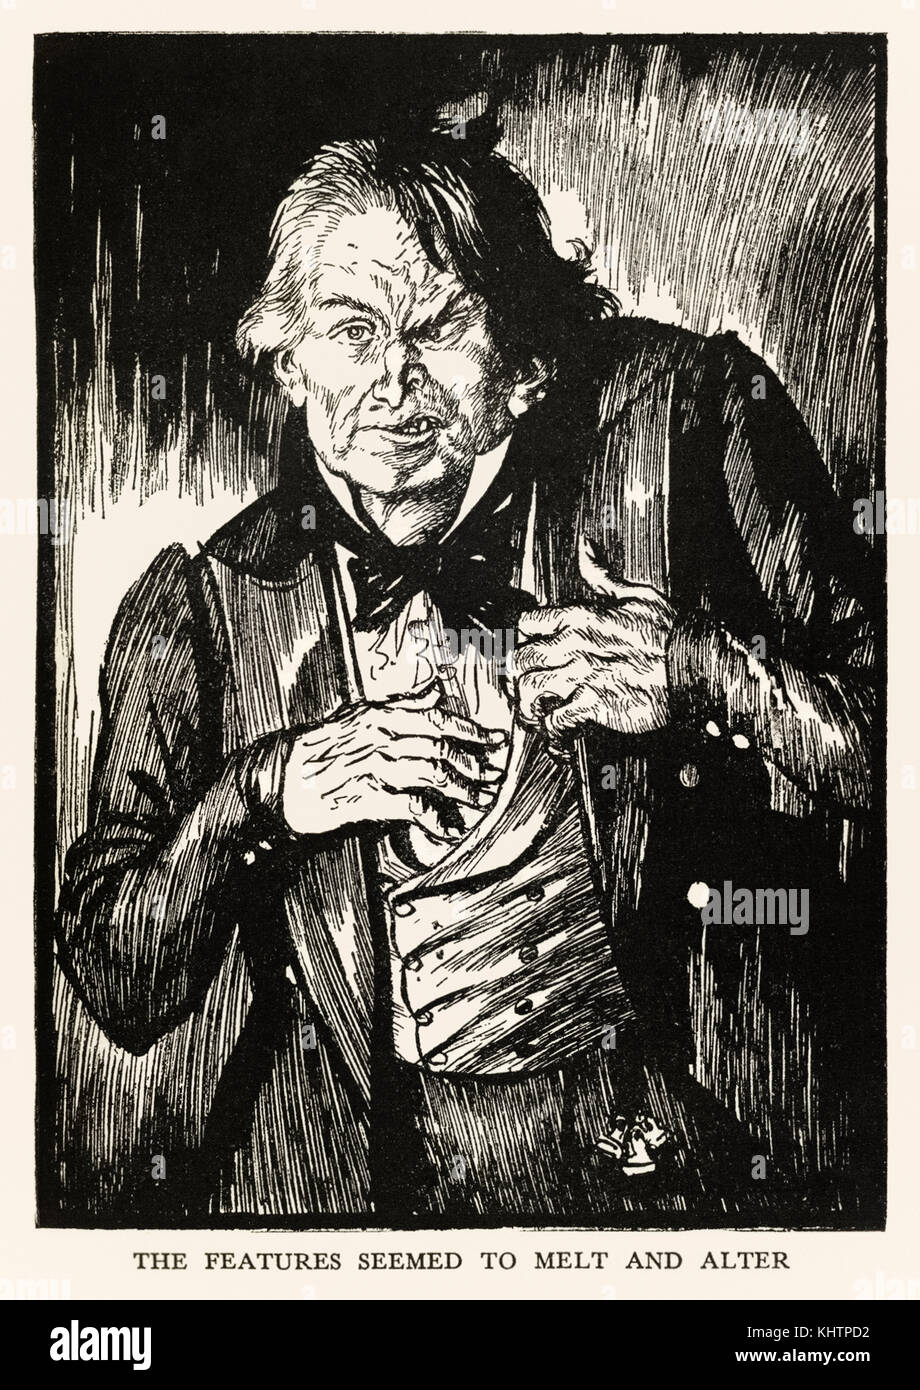 'The features seemed to melt and alter' from the 'Strange Case of Dr Jekyll and Mr Hyde' by Robert Louis Stevenson - Stock Image